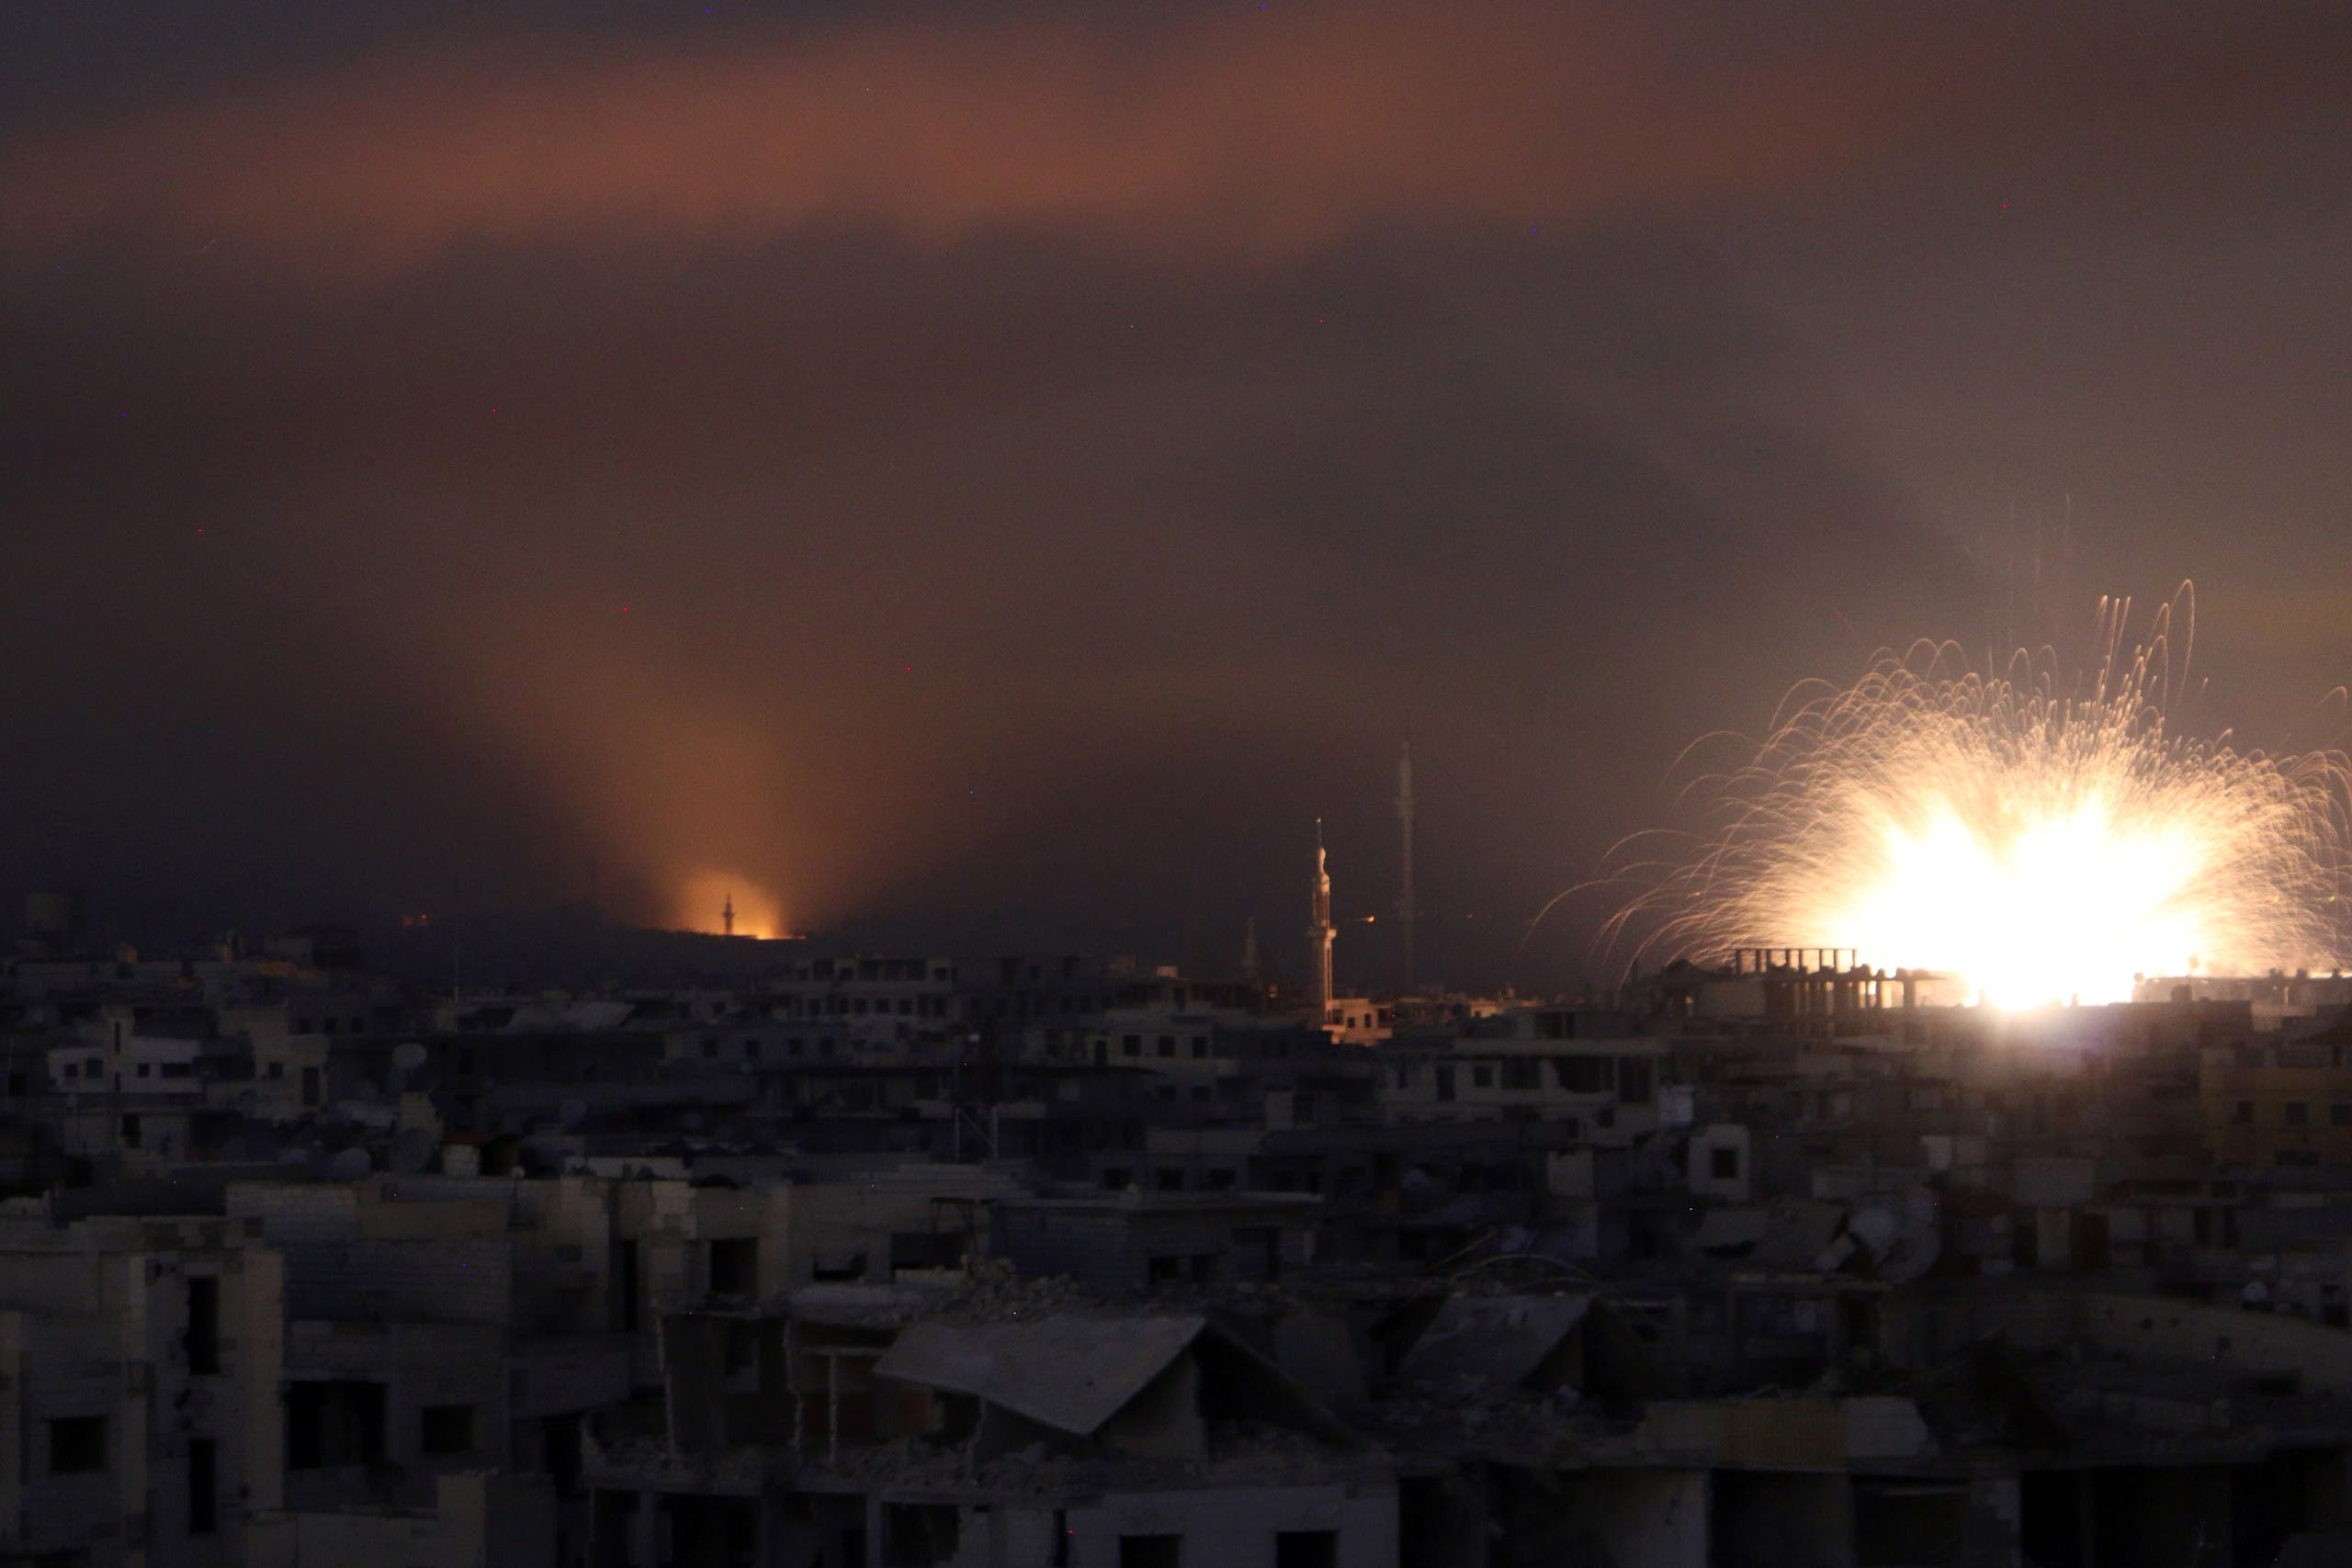 A general view shows explosions lighting the sky following regime air strikes on Zamalka, in the rebel enclave of Eastern Ghouta on the outskirts of Damascus on March 12, 2018. (AFP)